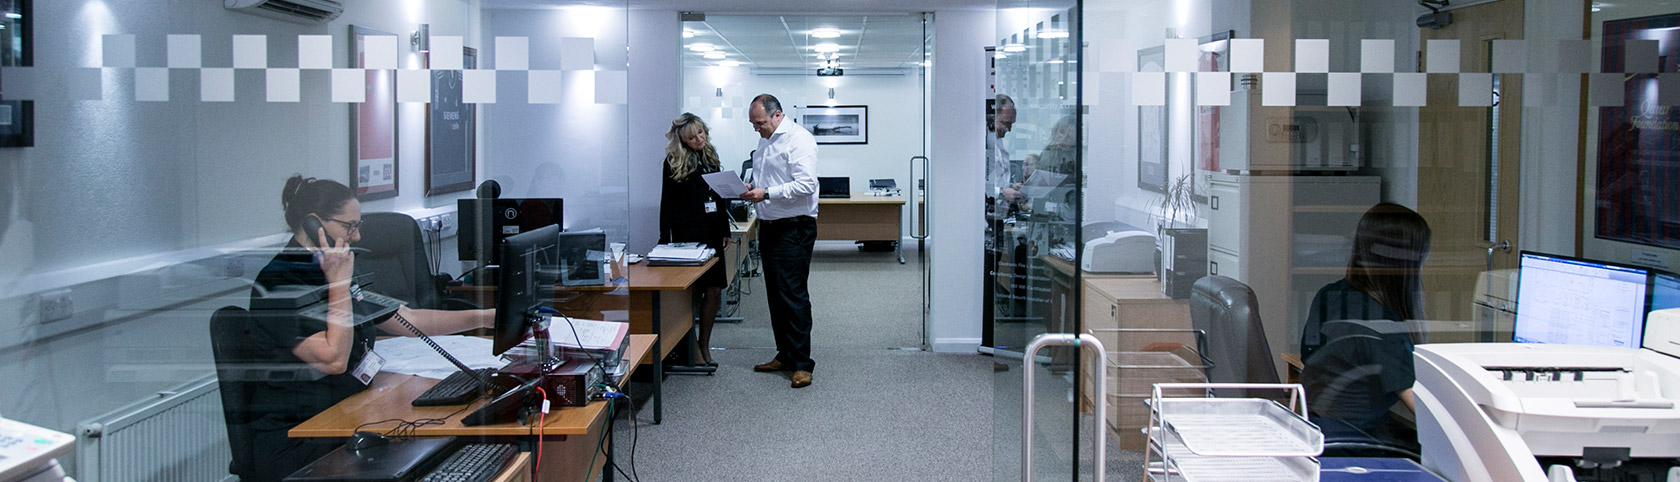 Lifeline Security specialists in the design, installation and maintenance of Electronic Fire & Security Systems